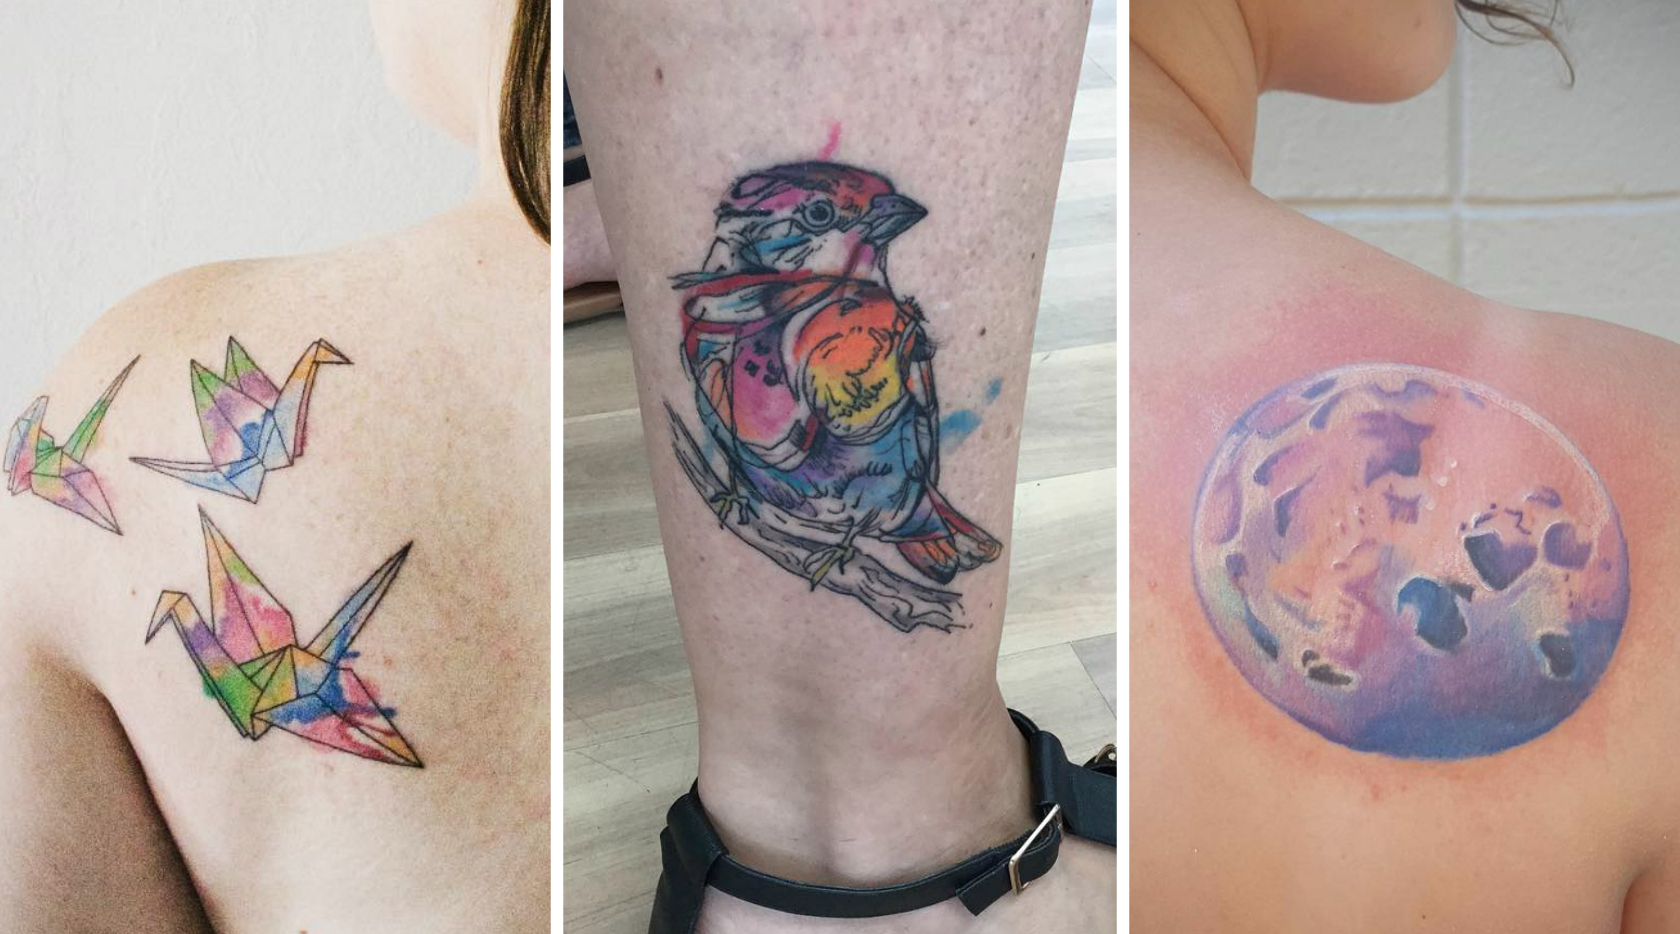 19 watercolor tattoos that look like something straight out of an artsy dream